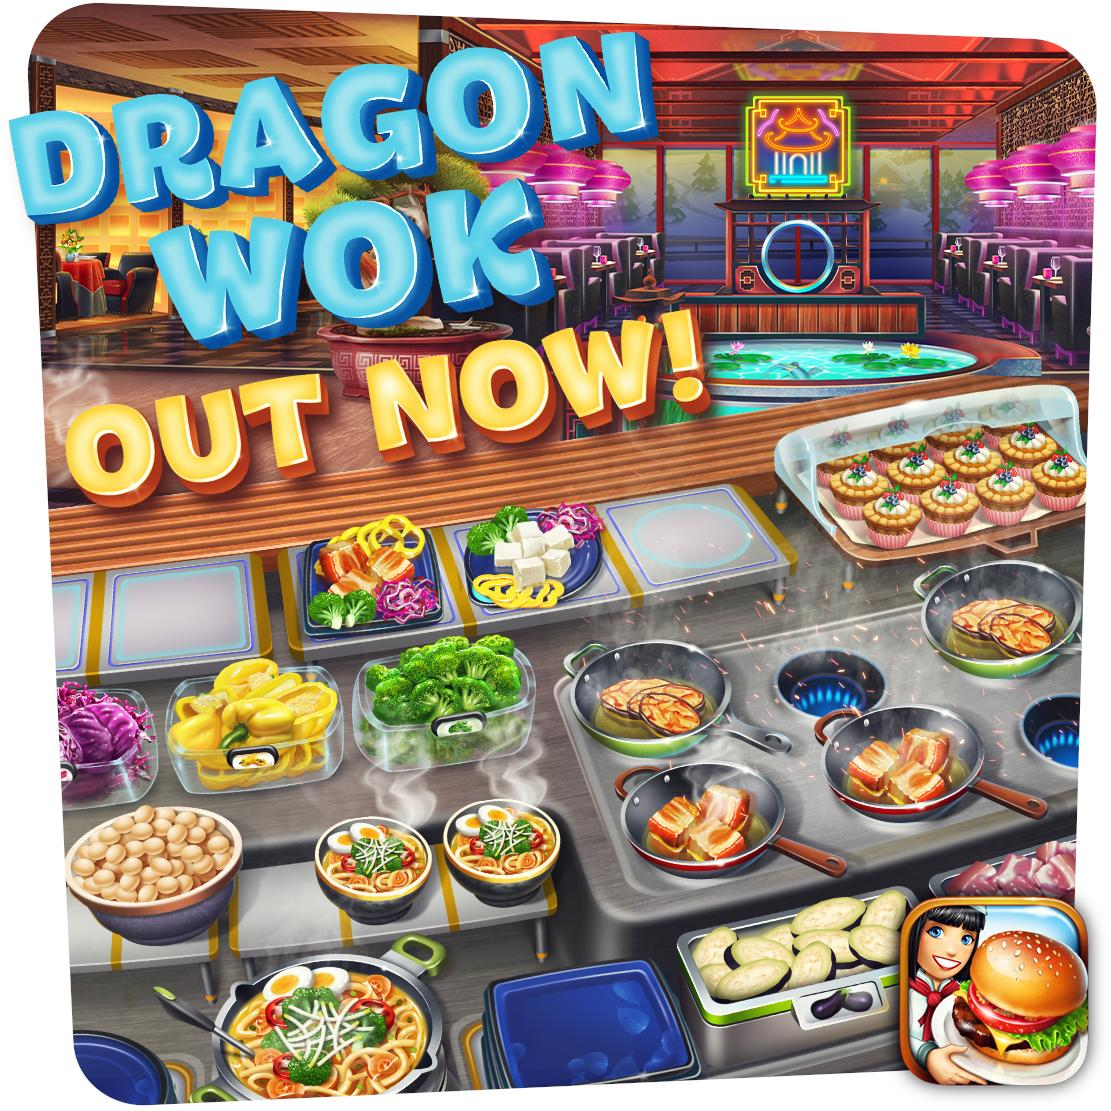 It's out now!  Sharpen your cooking skills with delicious and intricate dishes in the Alpine Resort's newest restaurant - Dragon Wok!  Update is available for iOS and Android, other platforms will be ready very soon! Have fun cooking! https://t.co/gjPCpgCrbk